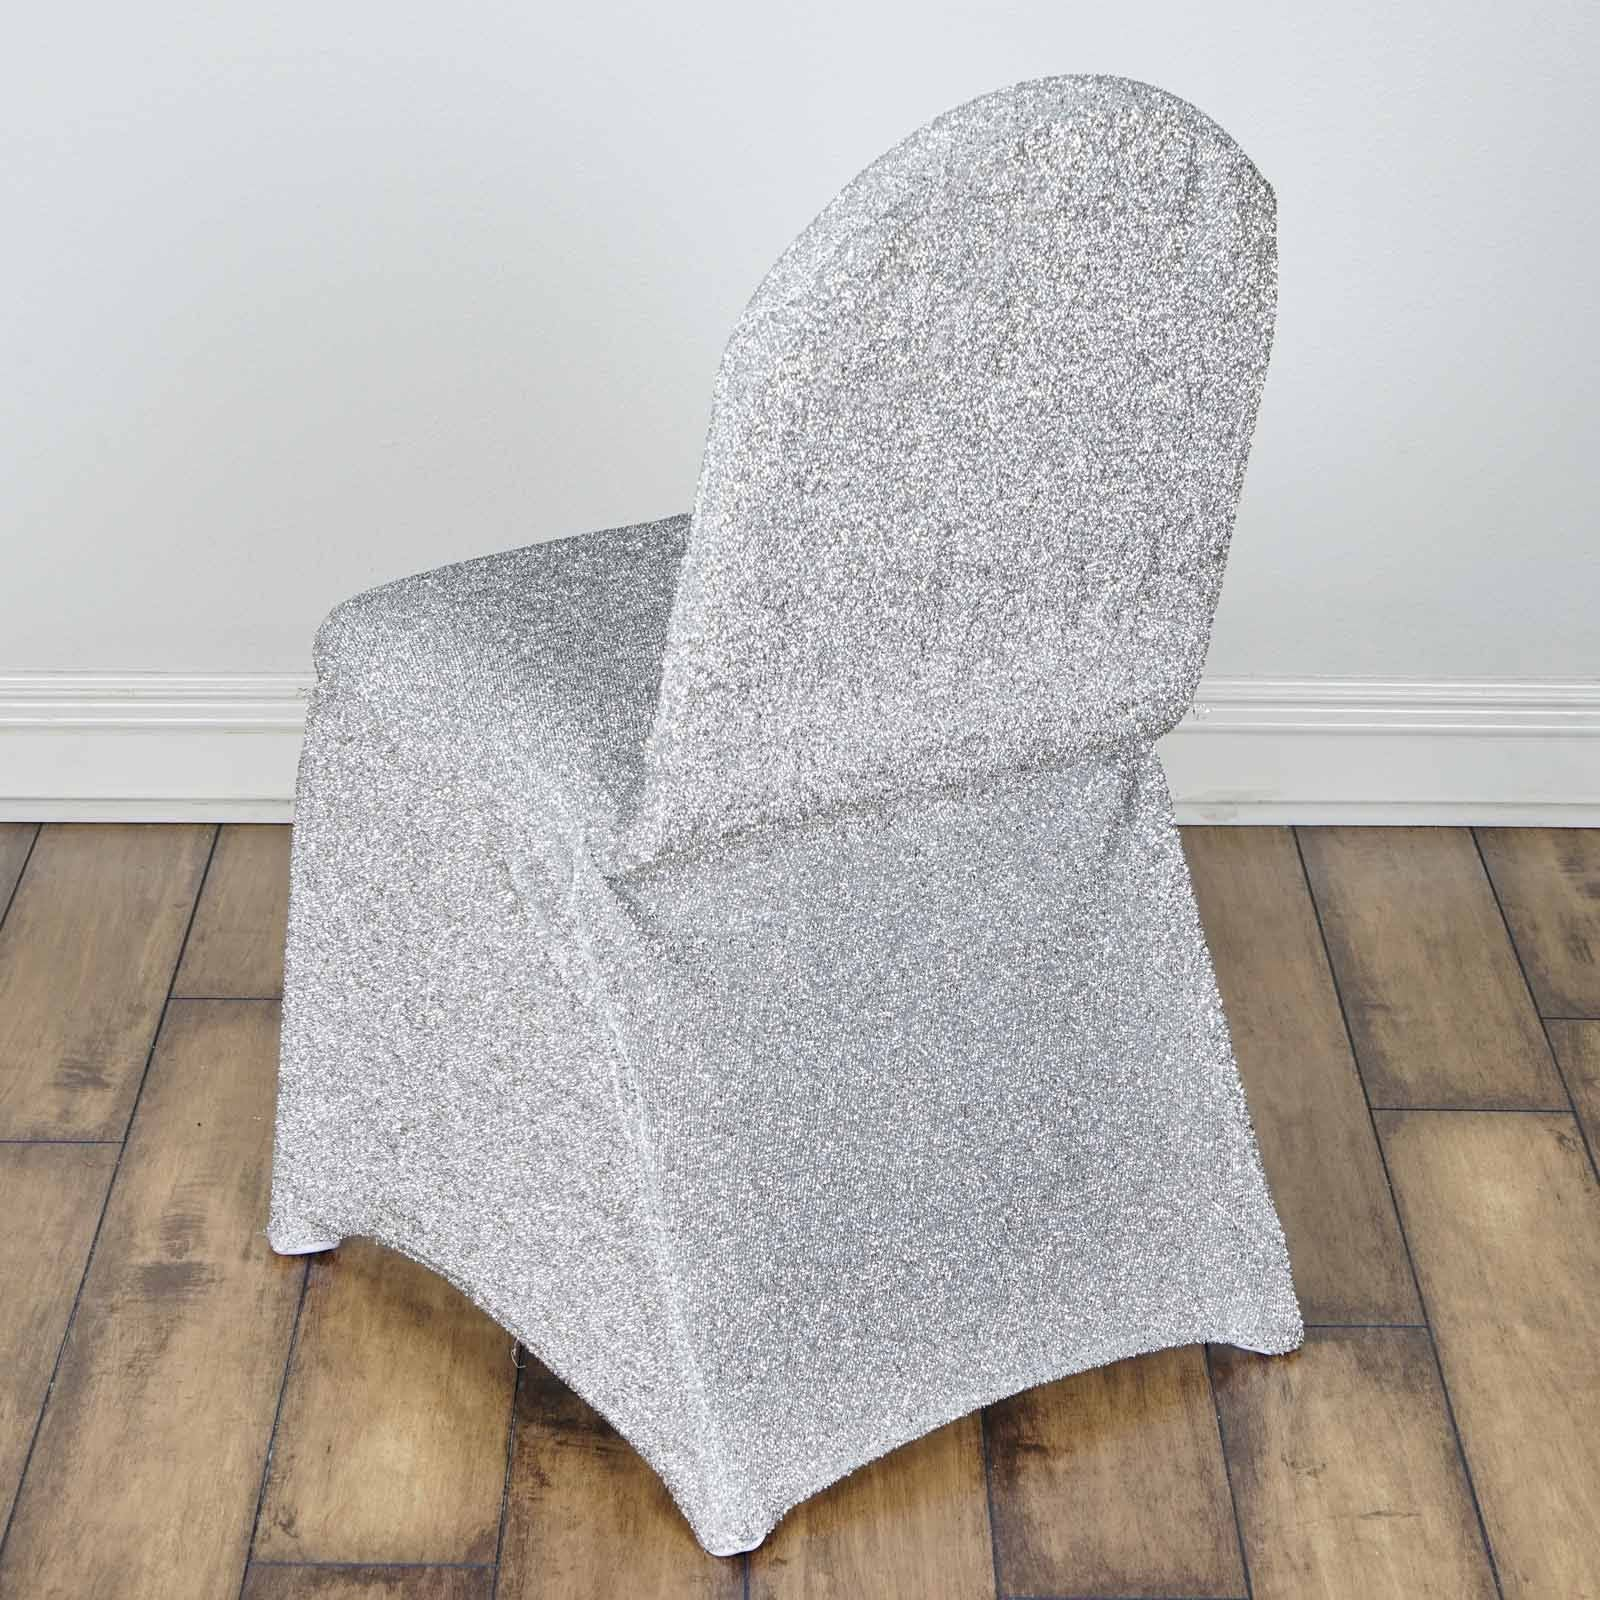 Metallic Glittering Silver Shiny Spandex Banquet Chair Cover Party